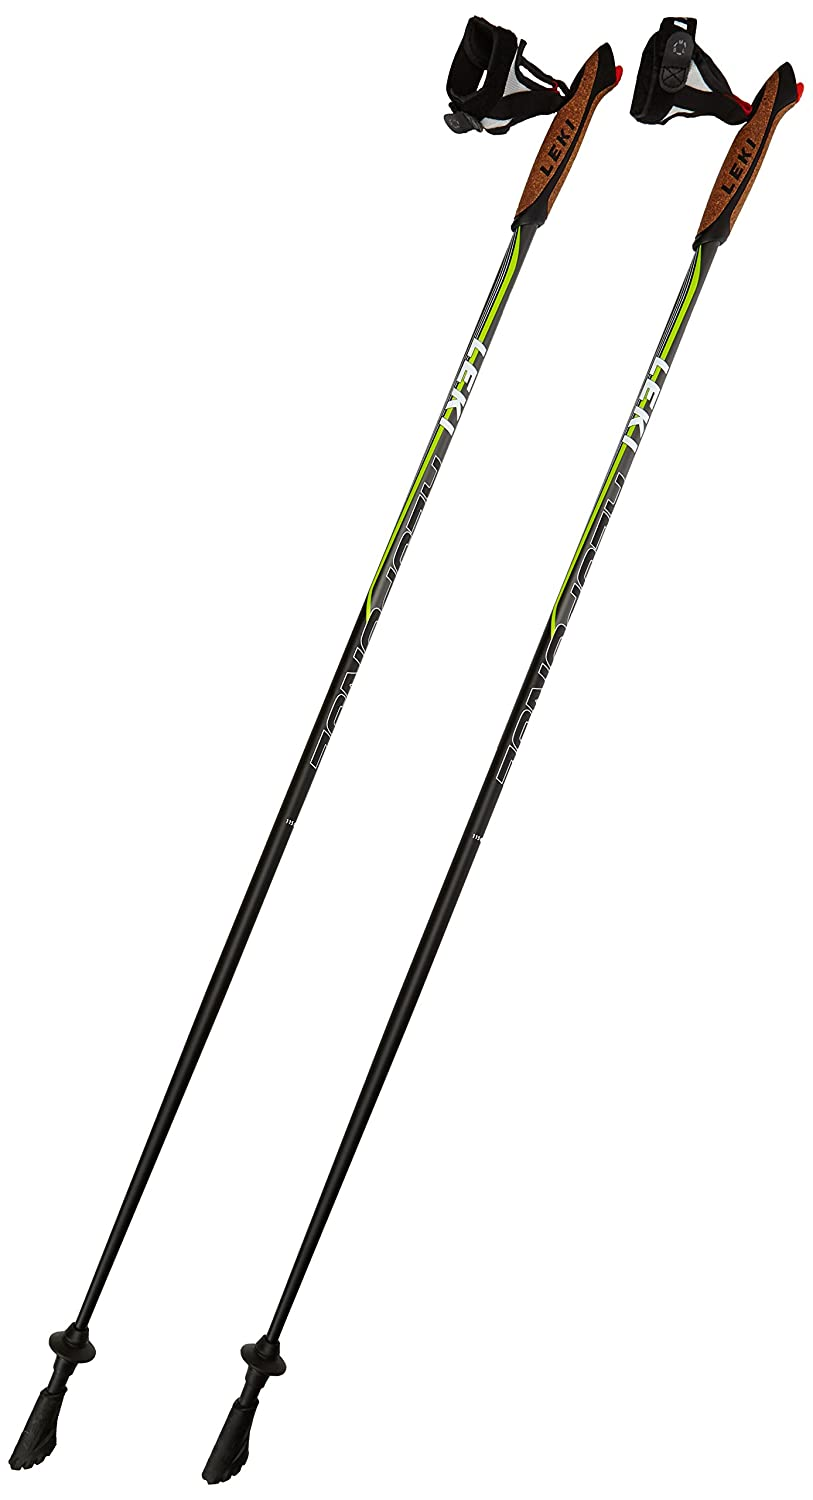 Leki Response St246 Nordic Walking Pole  B00C6ZN8OW